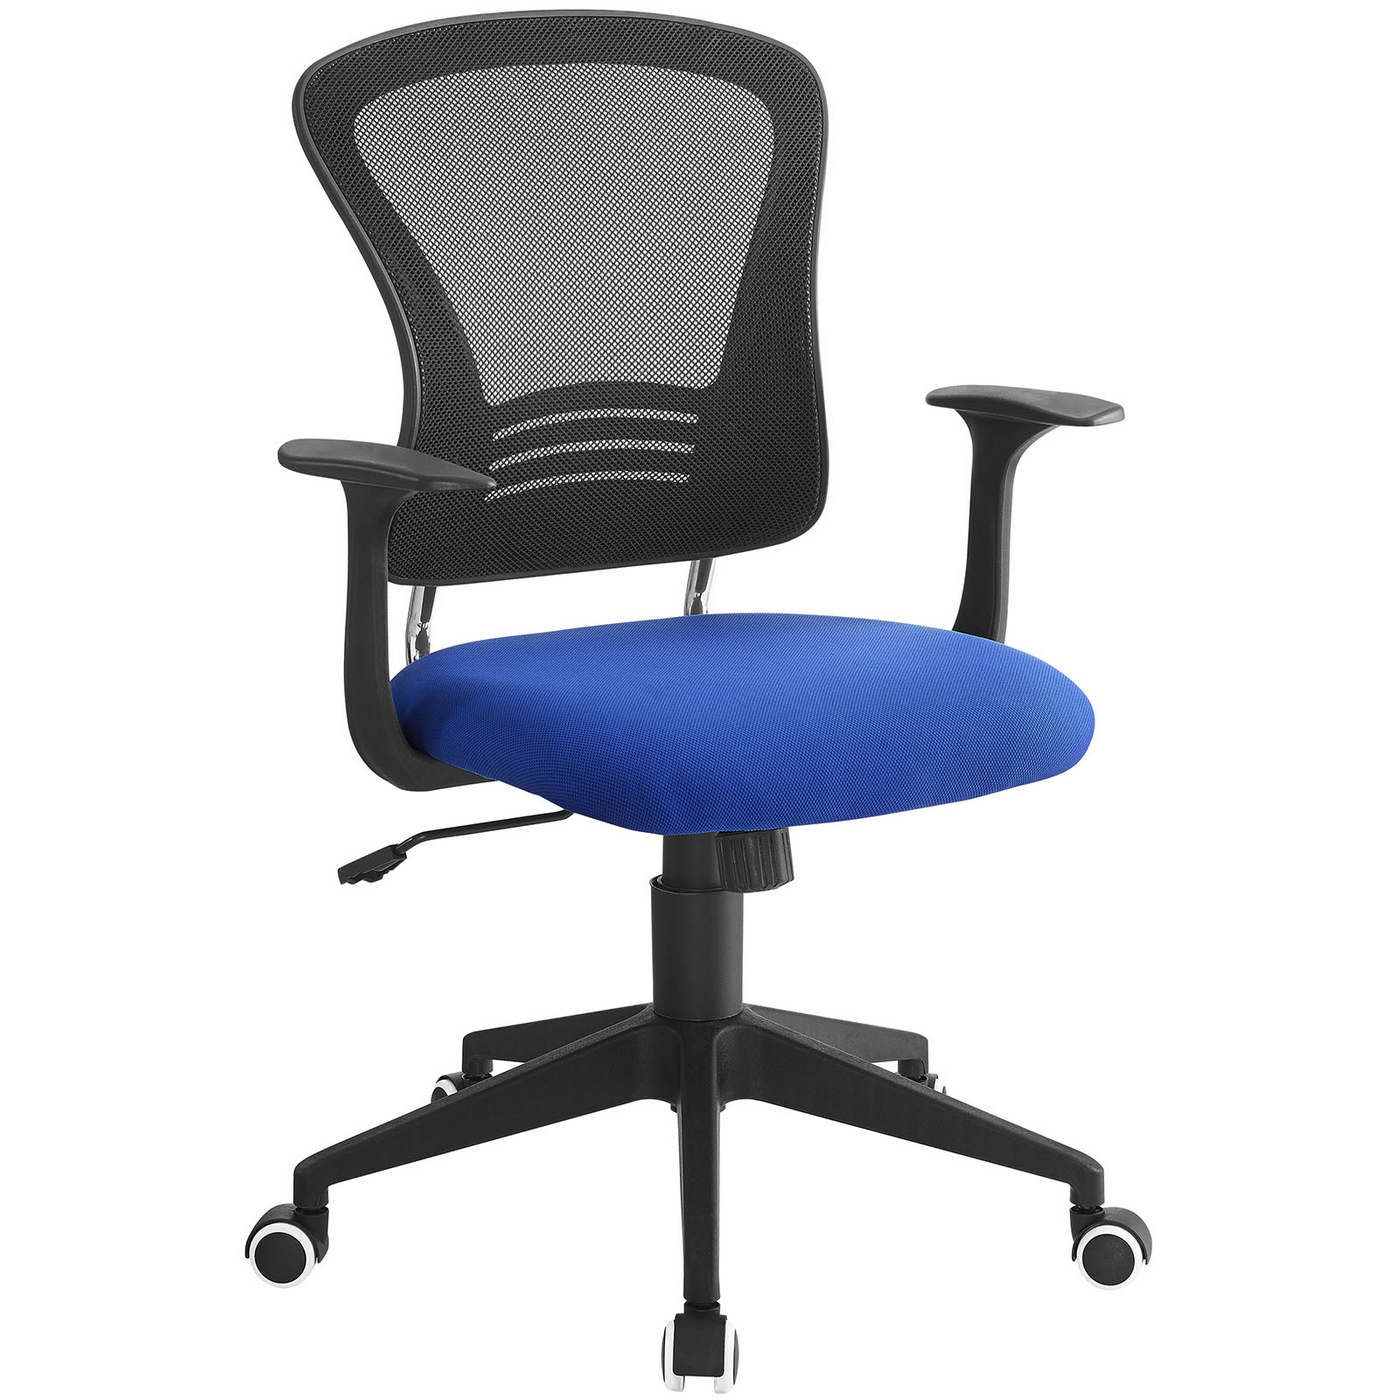 poise modern ergonomic mesh back office chair with lumbar support blue. Black Bedroom Furniture Sets. Home Design Ideas